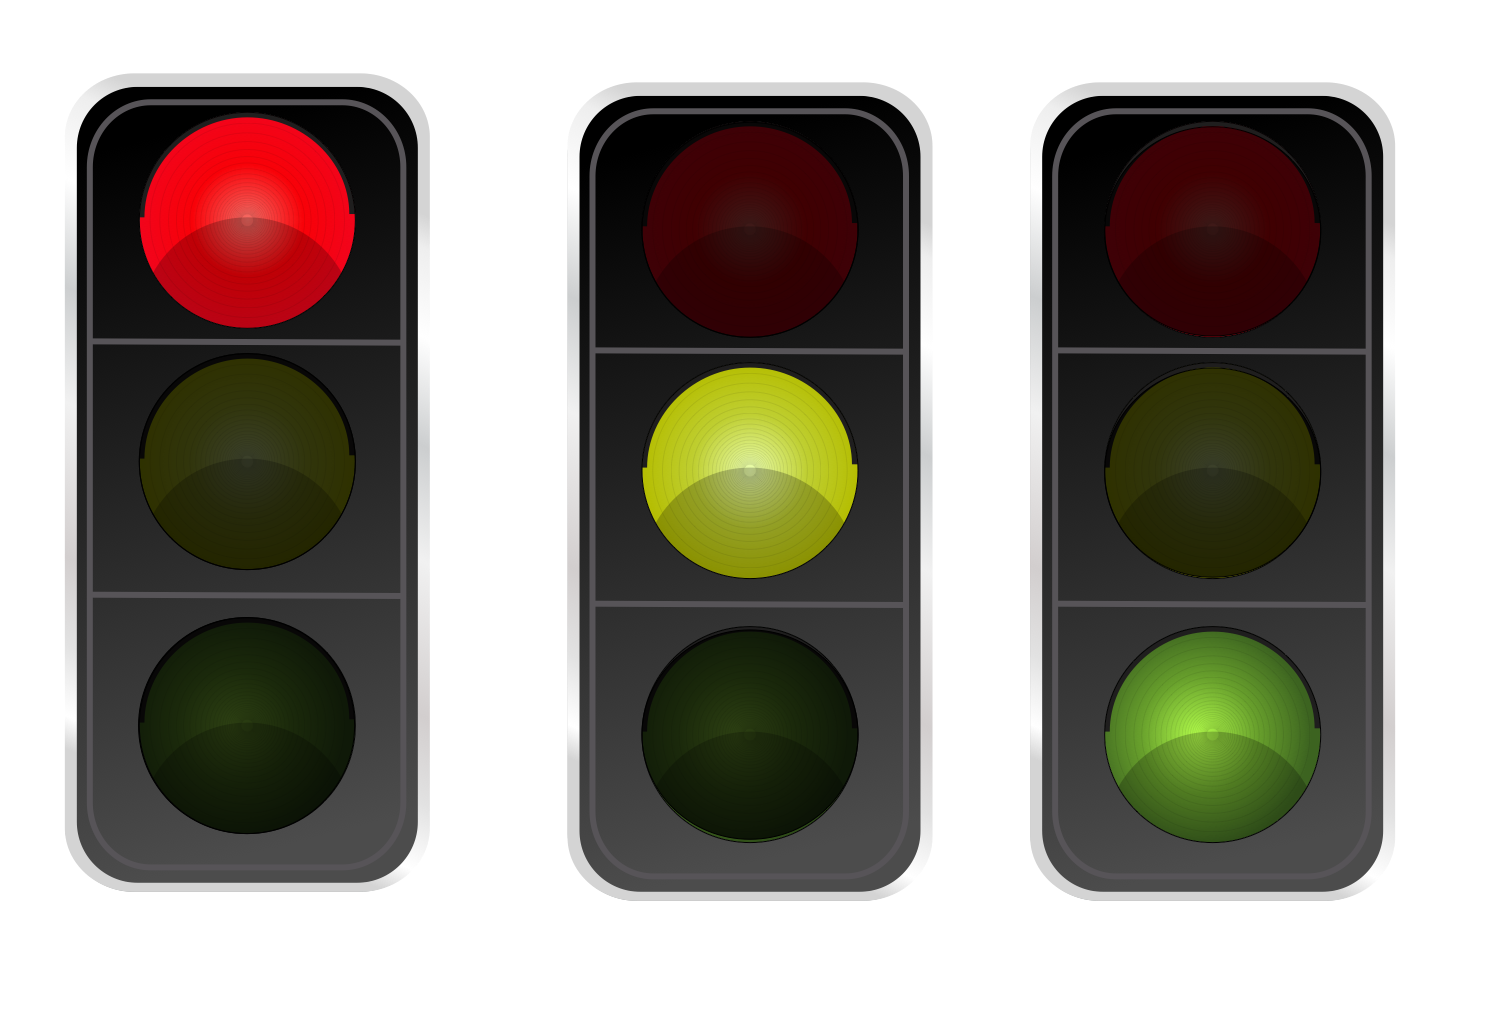 psd-red-orange-green-traffic-lights (1)